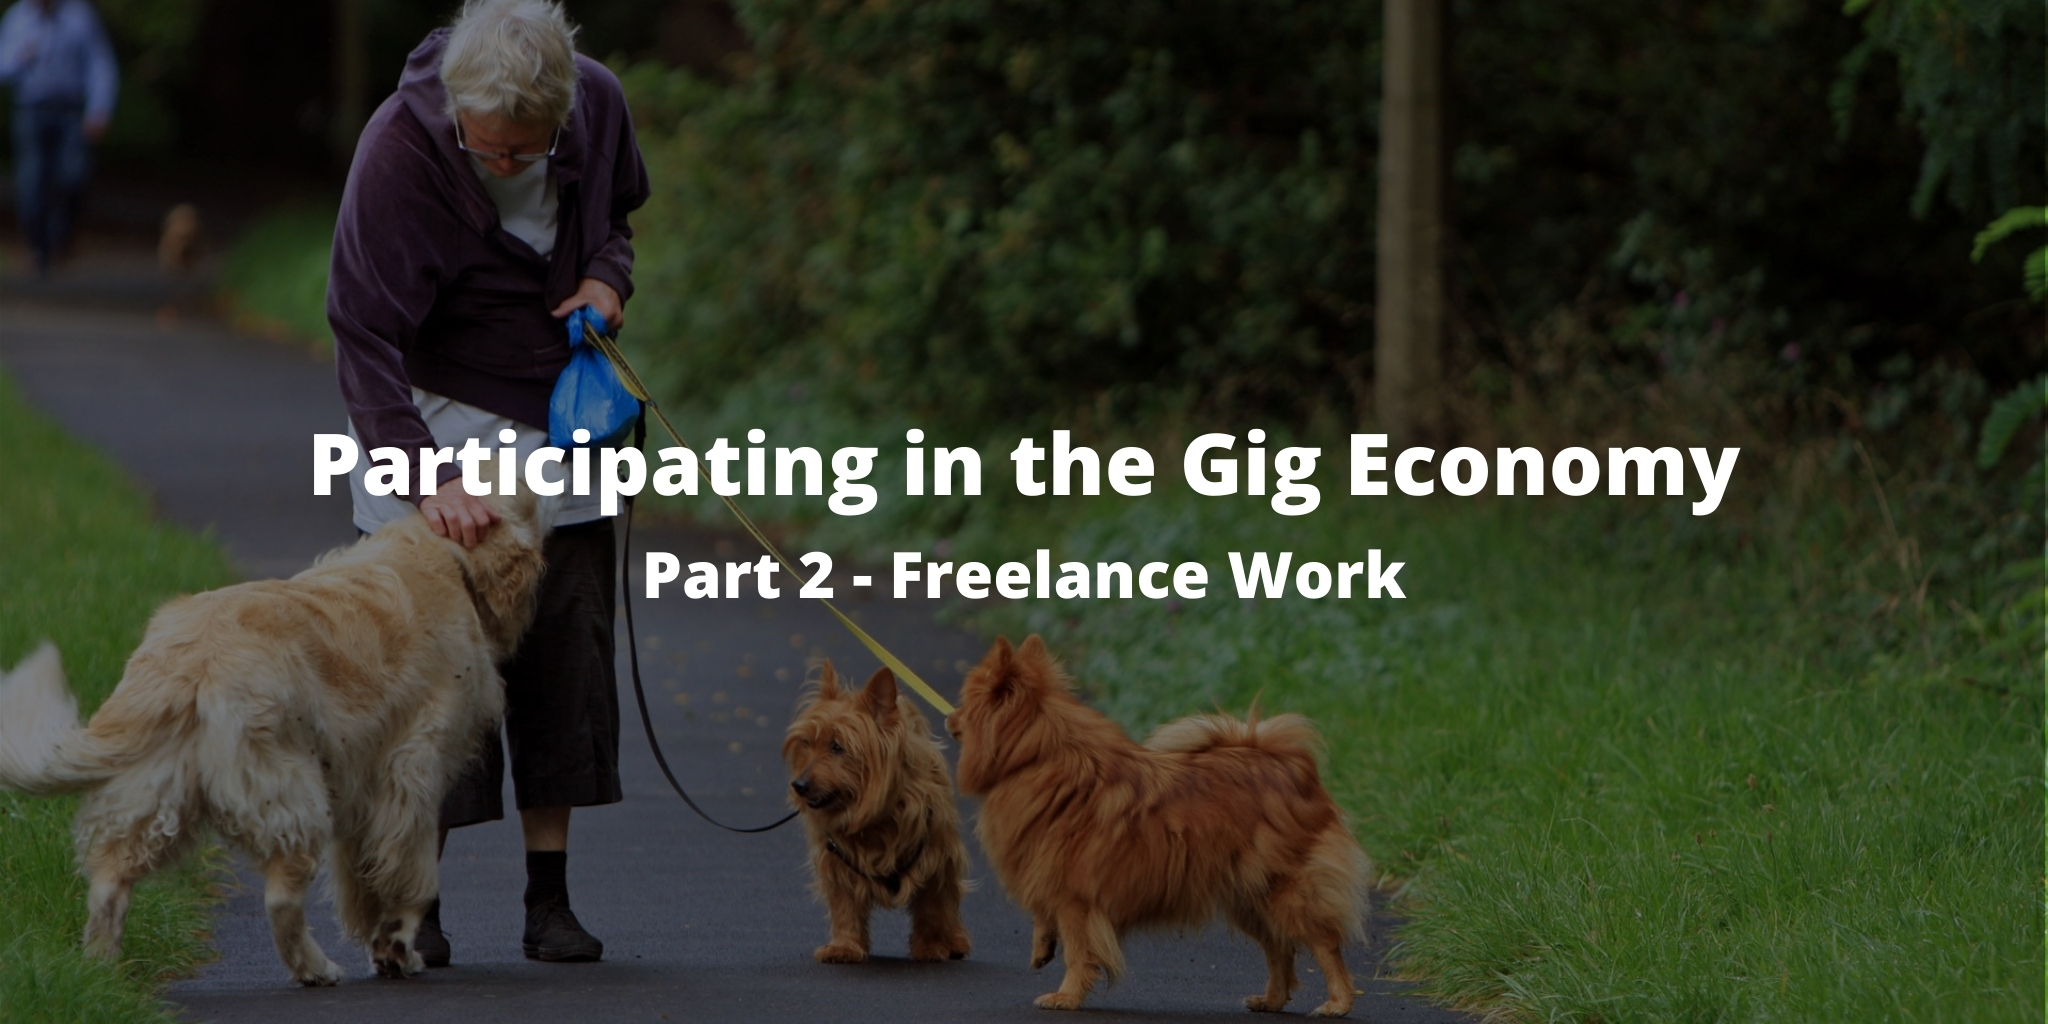 Participating in the Gig Economy: Part 2 - Freelance Work